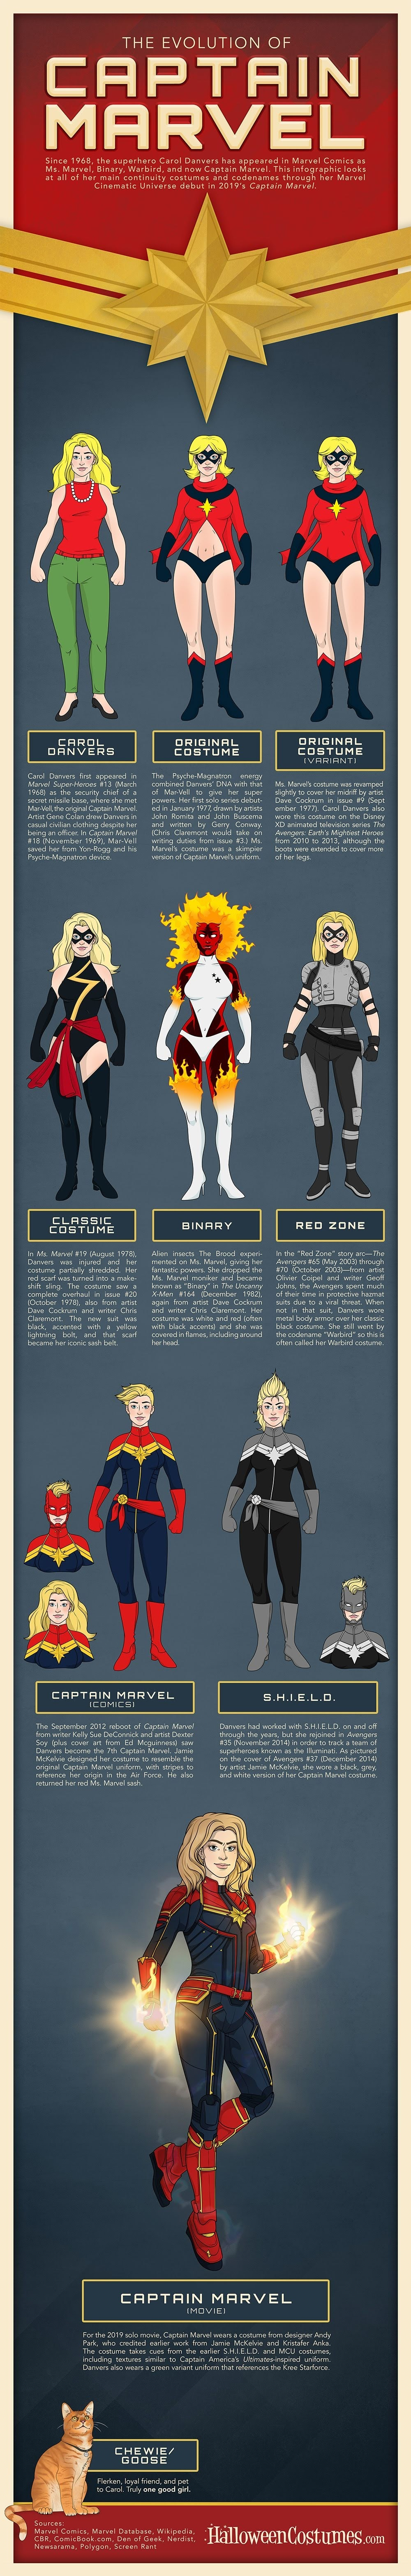 The Evolution Of Captain Marvel #infographic